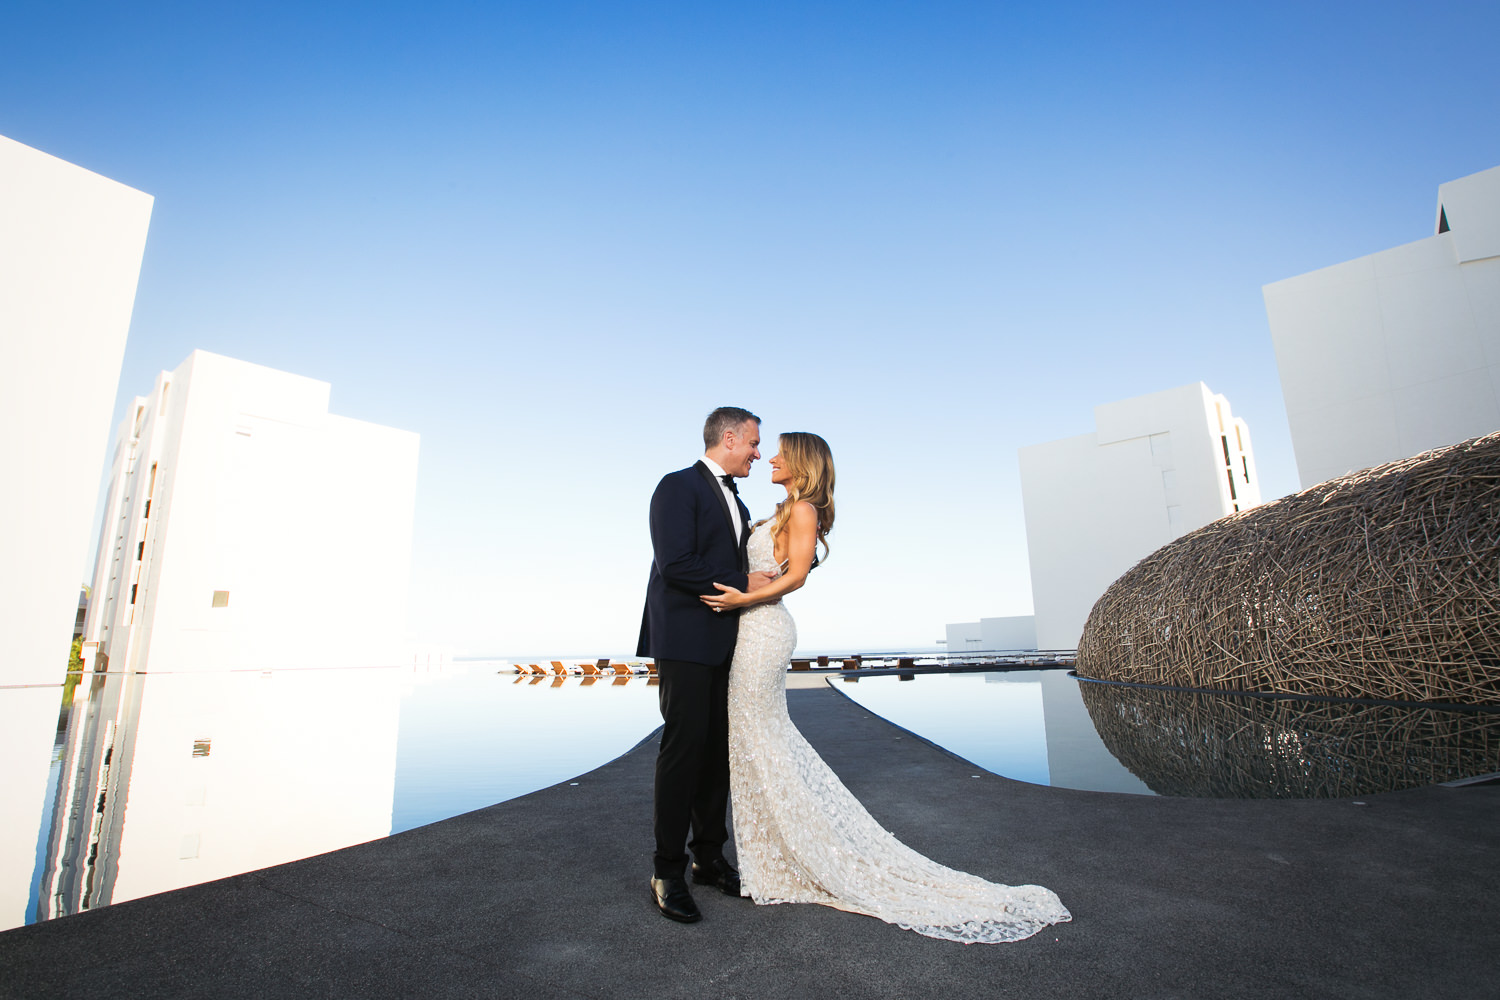 Viceroy Los Cabos Wedding - Embracing in the gorgeous scenery